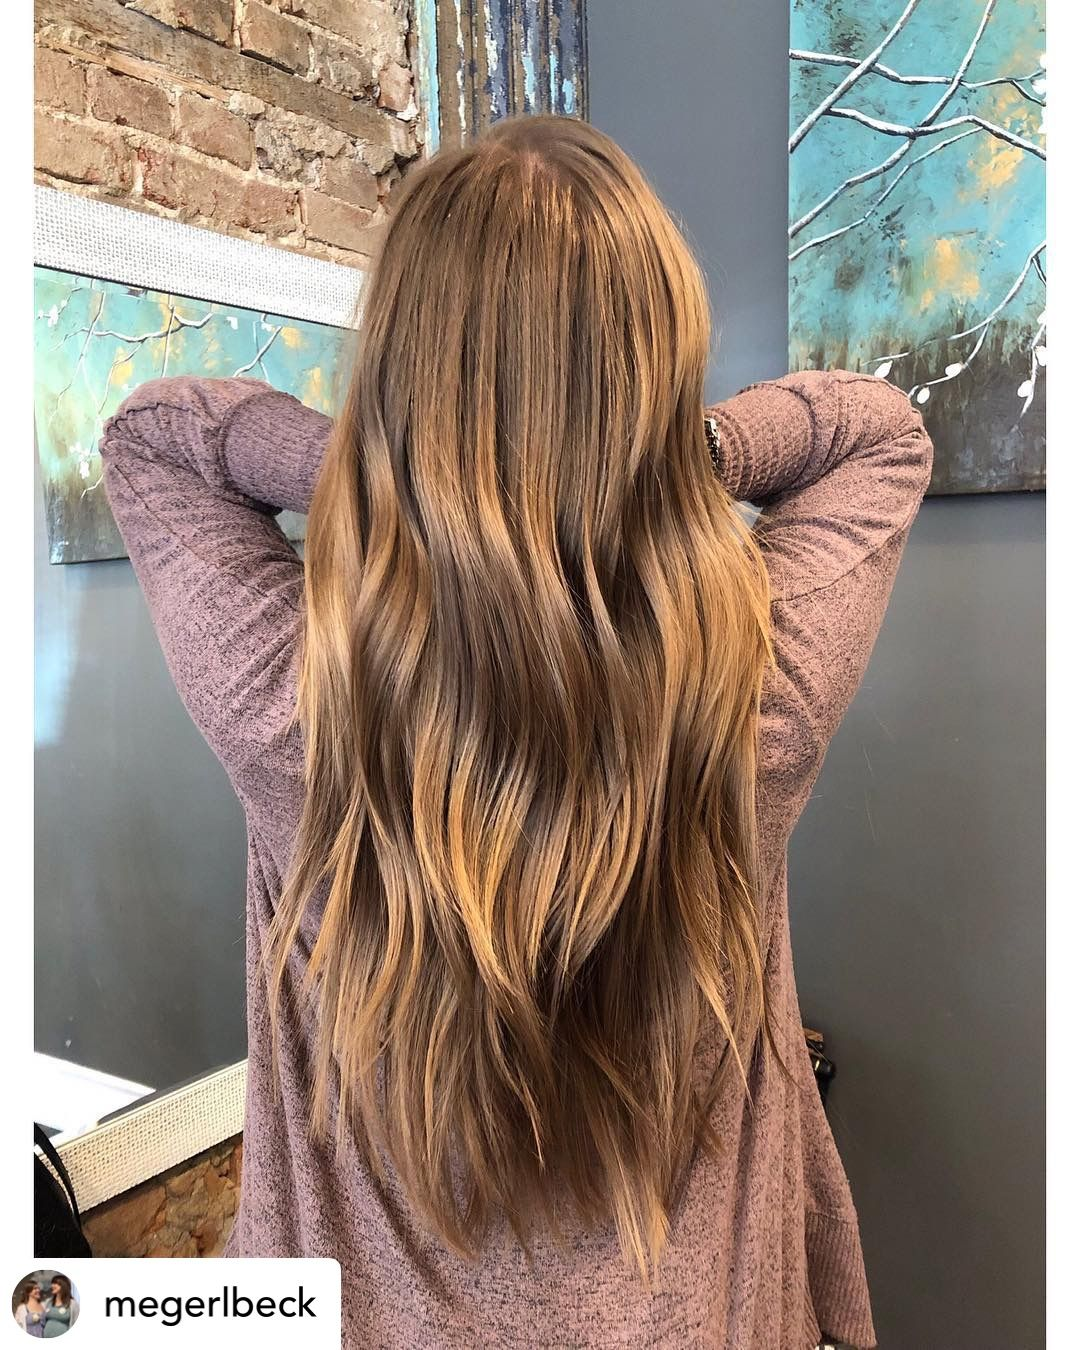 10 Different Hairstyles That Will Make You Want New Hair In 2020 Hair Styles Different Hair Types Overnight Hairstyles